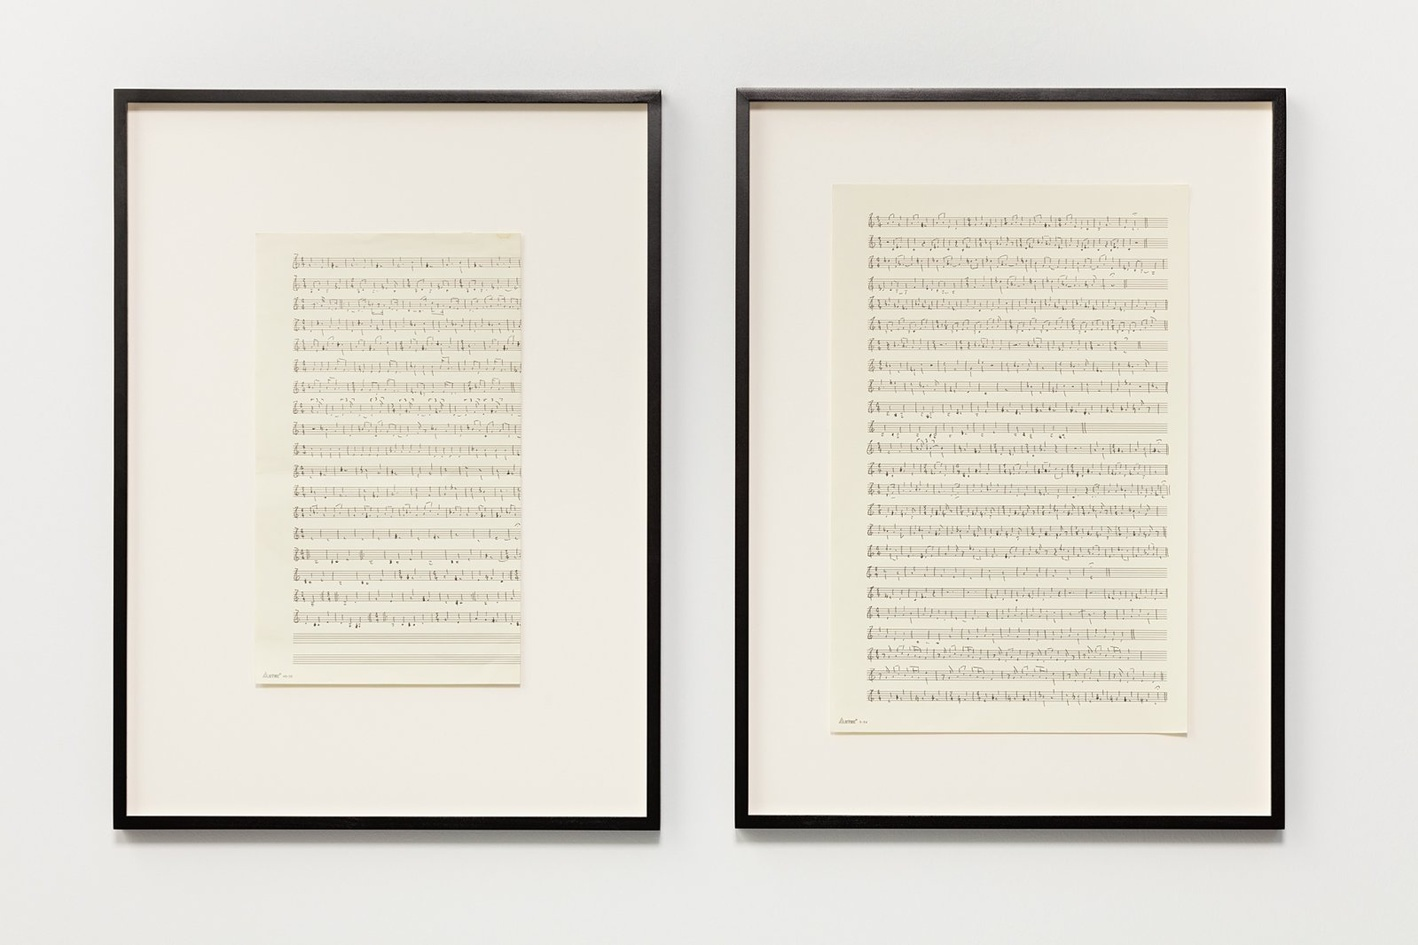 Ari benjamin Meyers, Aztec 1.5, 2015, handwritten score on found paper, 43.2x28 cm each (motif), 2 parts. 58.2x43x2.8 cm each (framed)